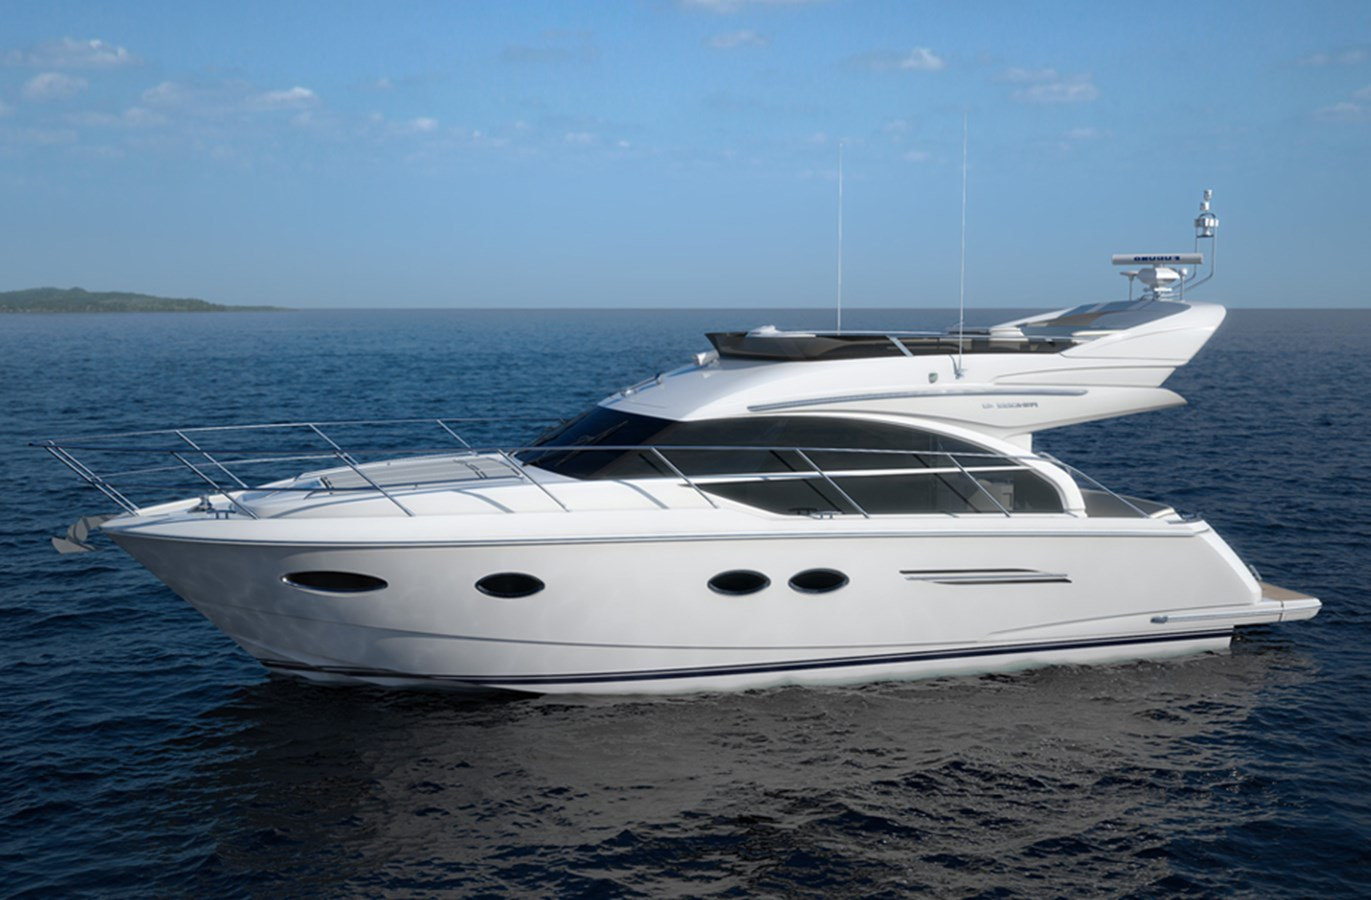 New Princess 43 Flybridge Yachts For Sale Galati Yacht Sales